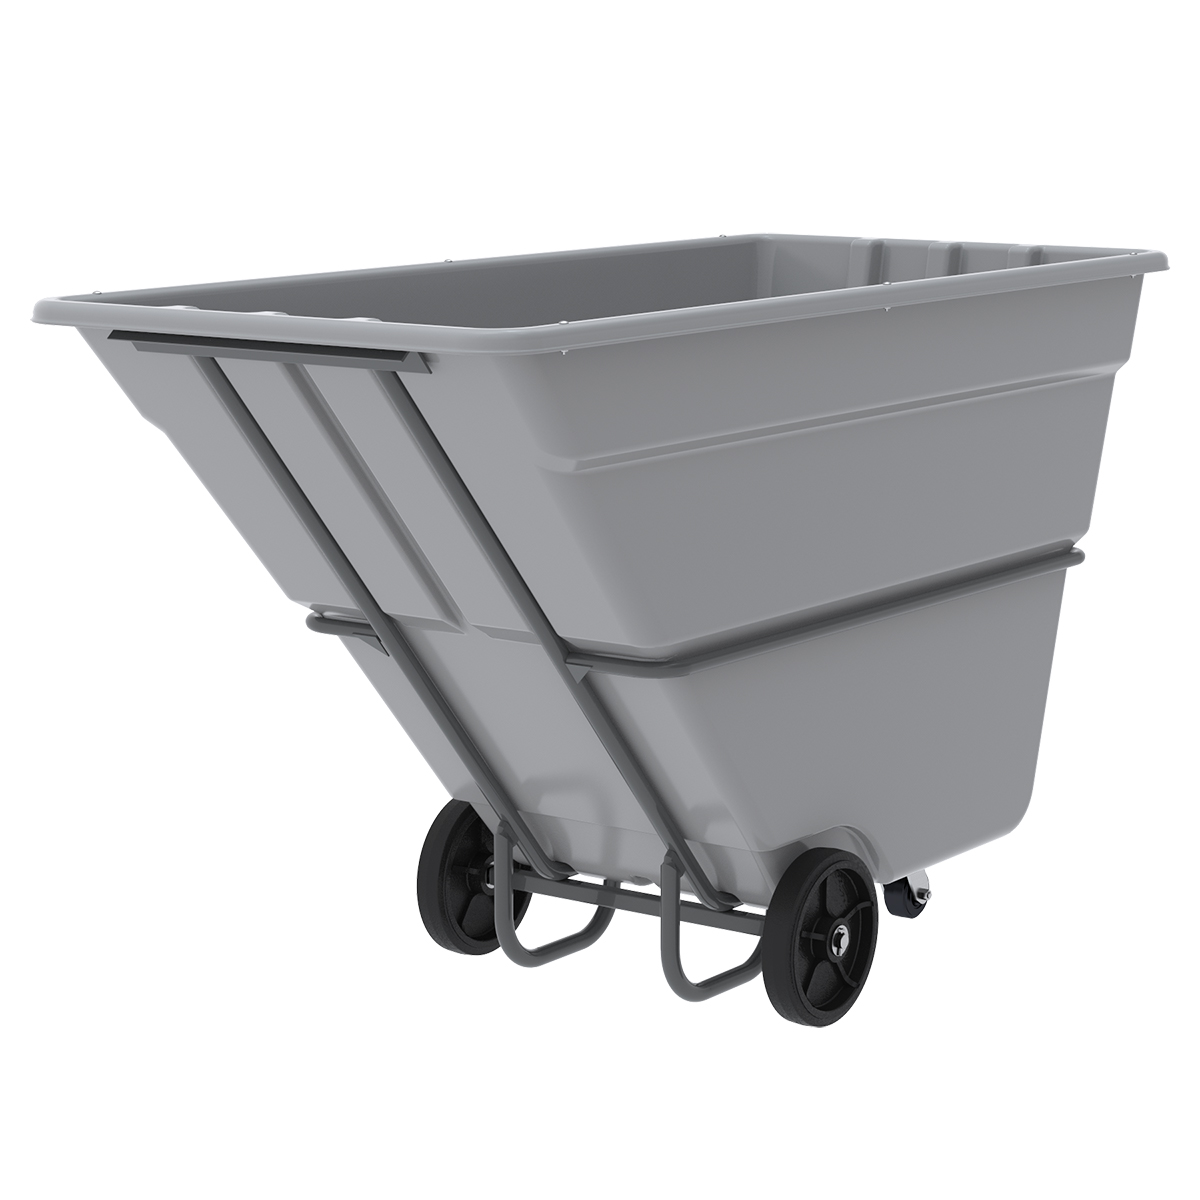 AKRO-TILT TRUCK, HEAVY DUTY, 300GAL - 1-1/2 YD.  This item sold in carton quantities of 1.